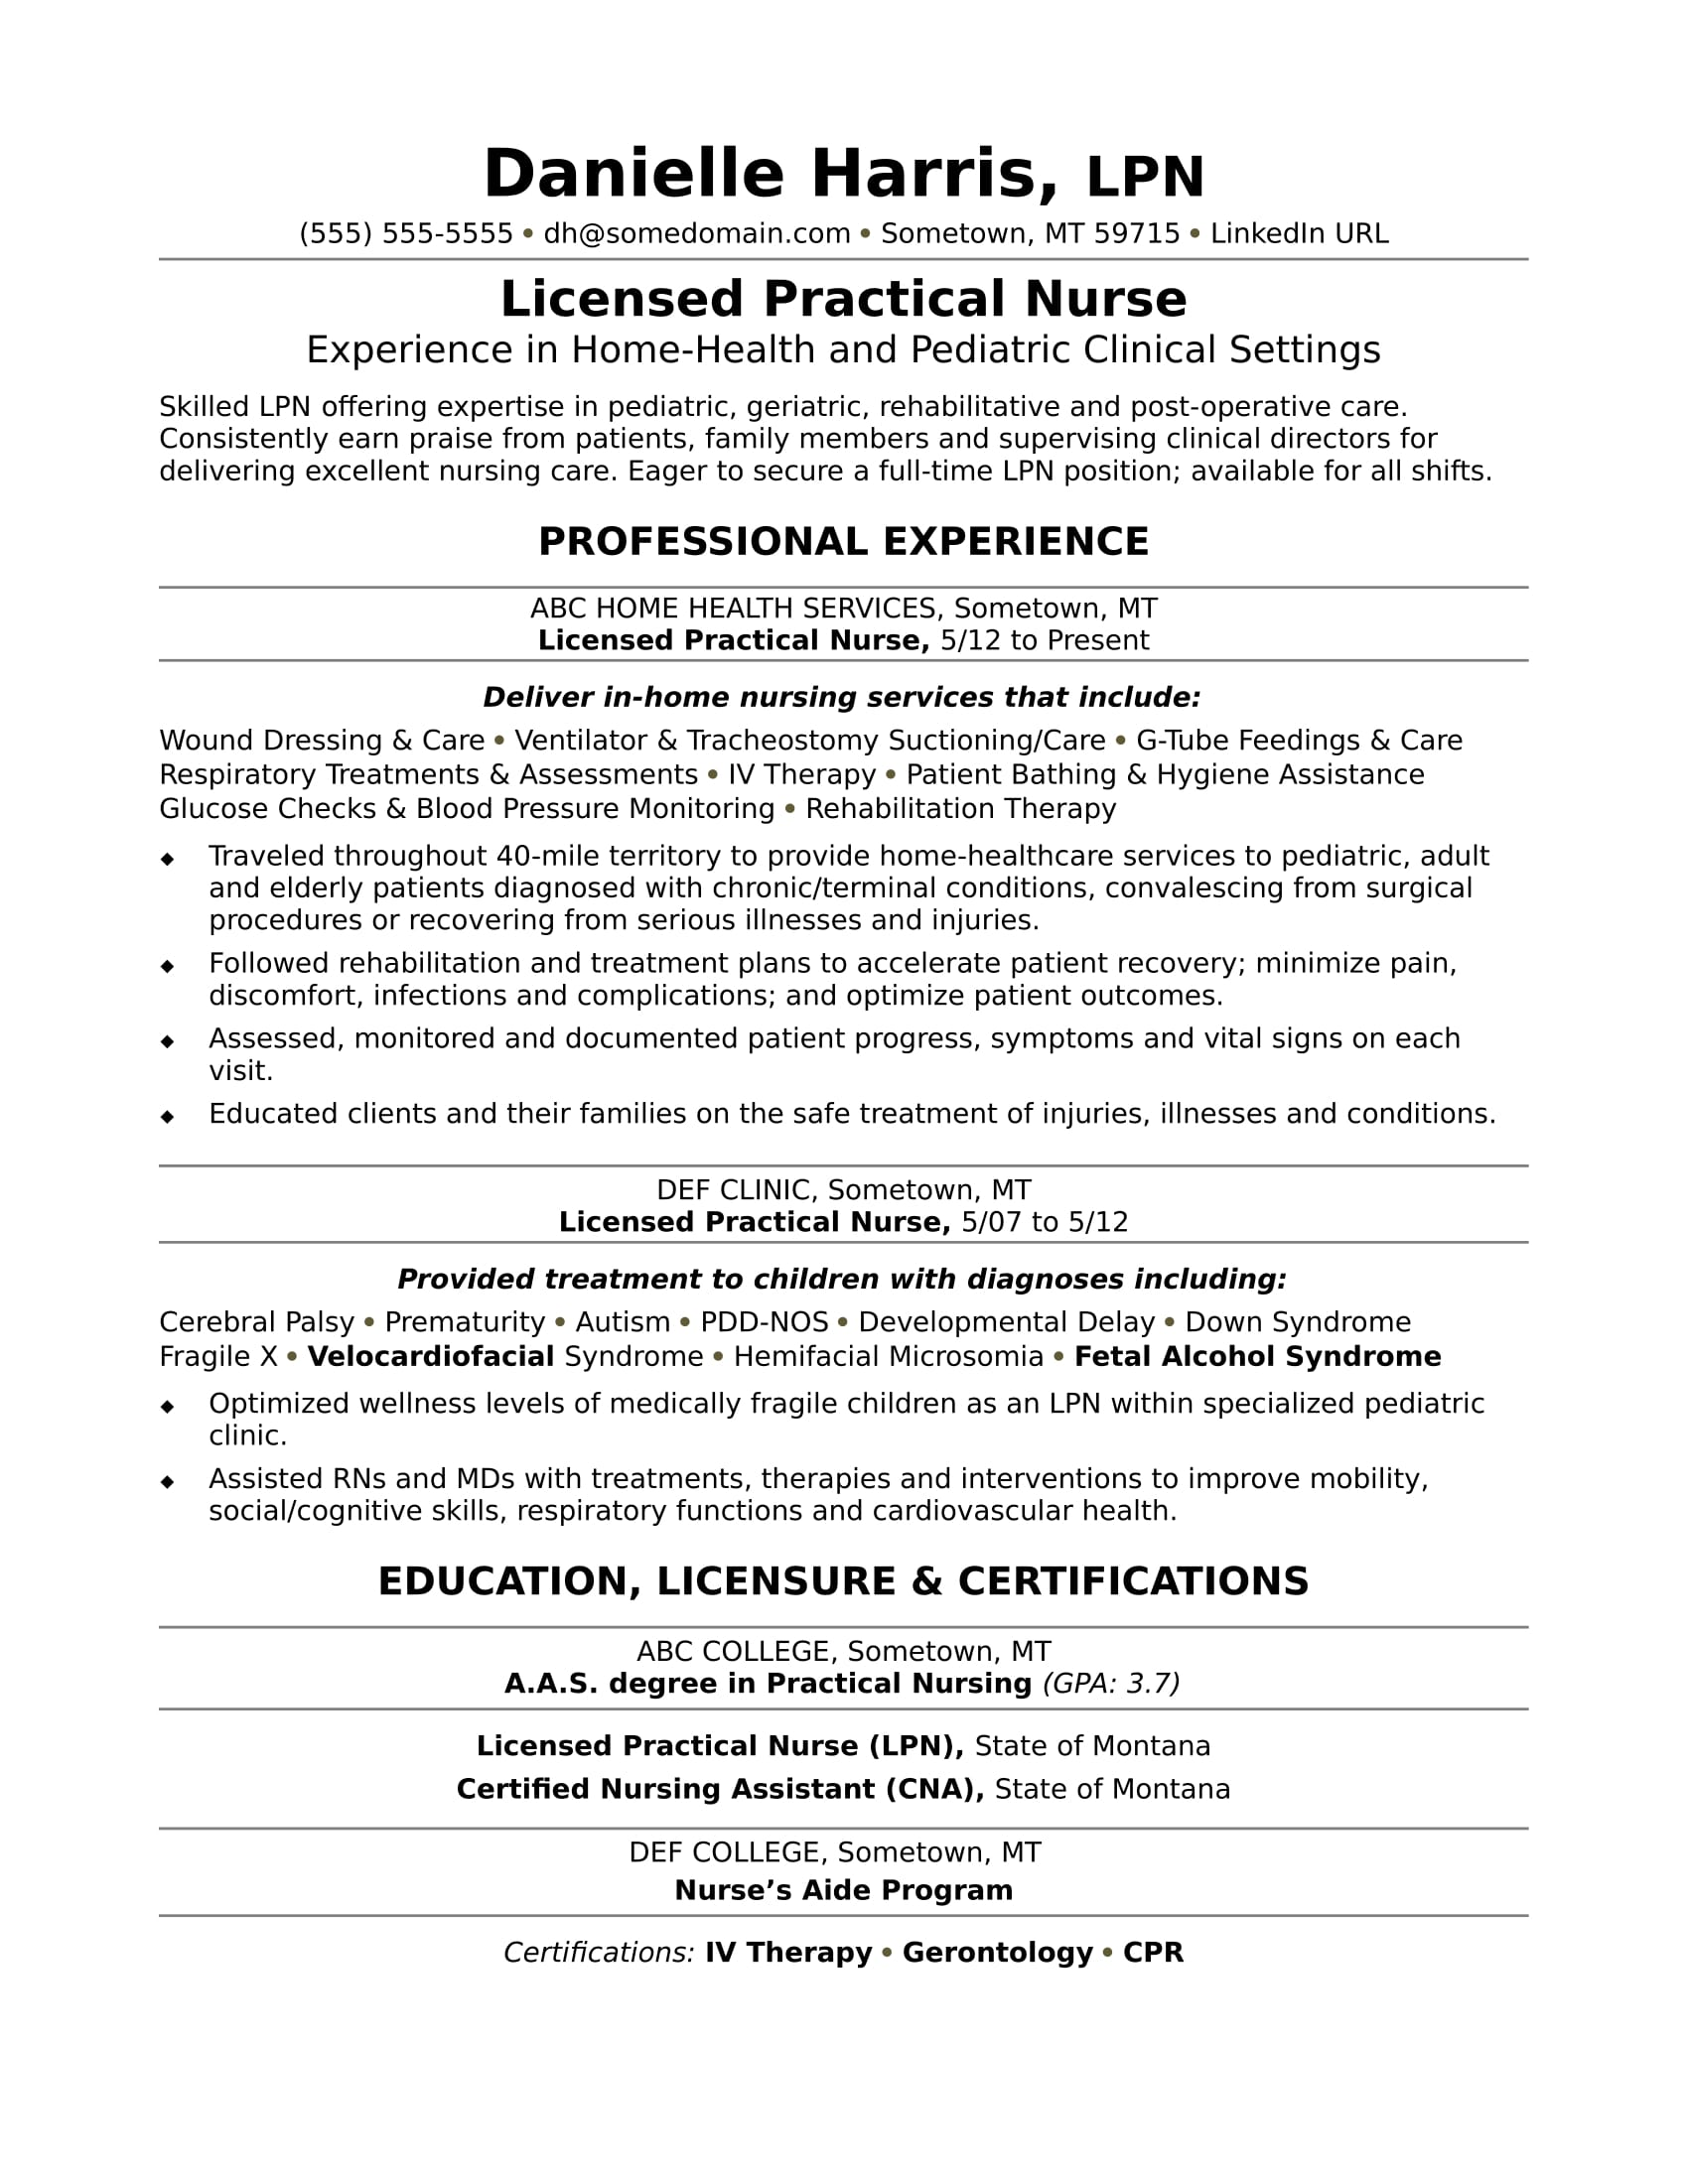 Licensed practical nurse resume sample monster licensed practical nurse resume sample altavistaventures Images